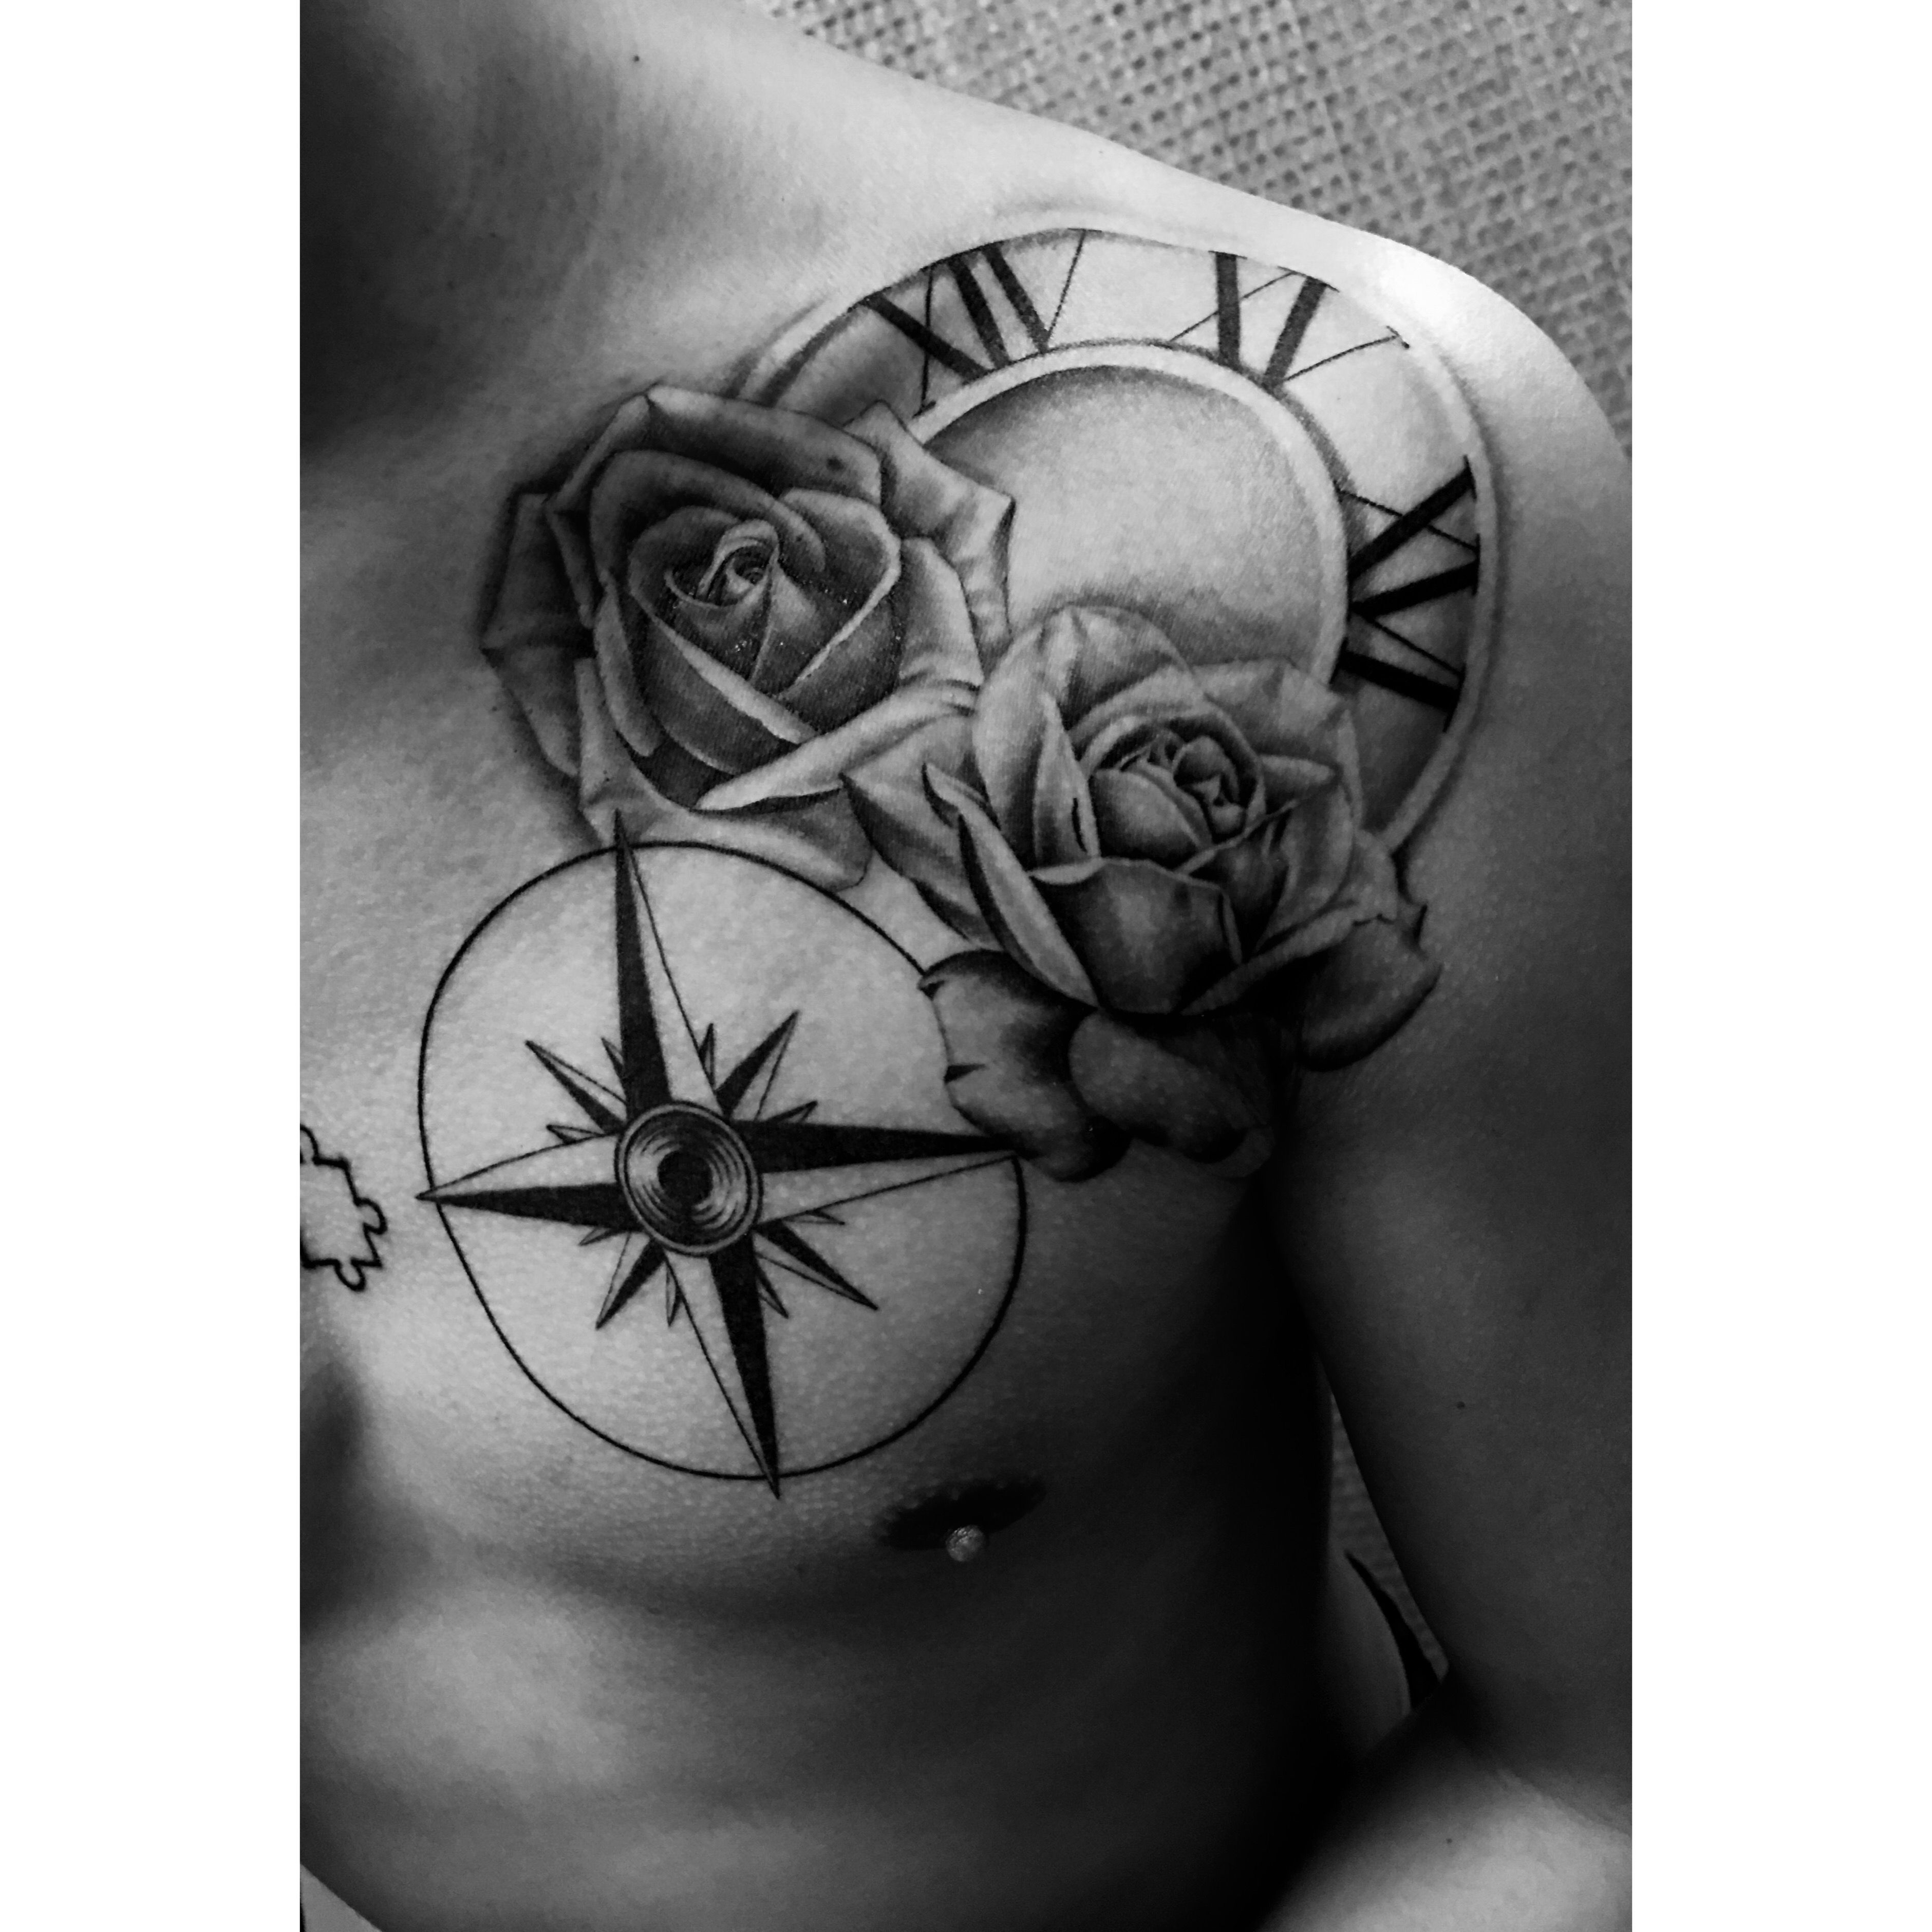 Tattoo of compass & roses with Roman numeral years on